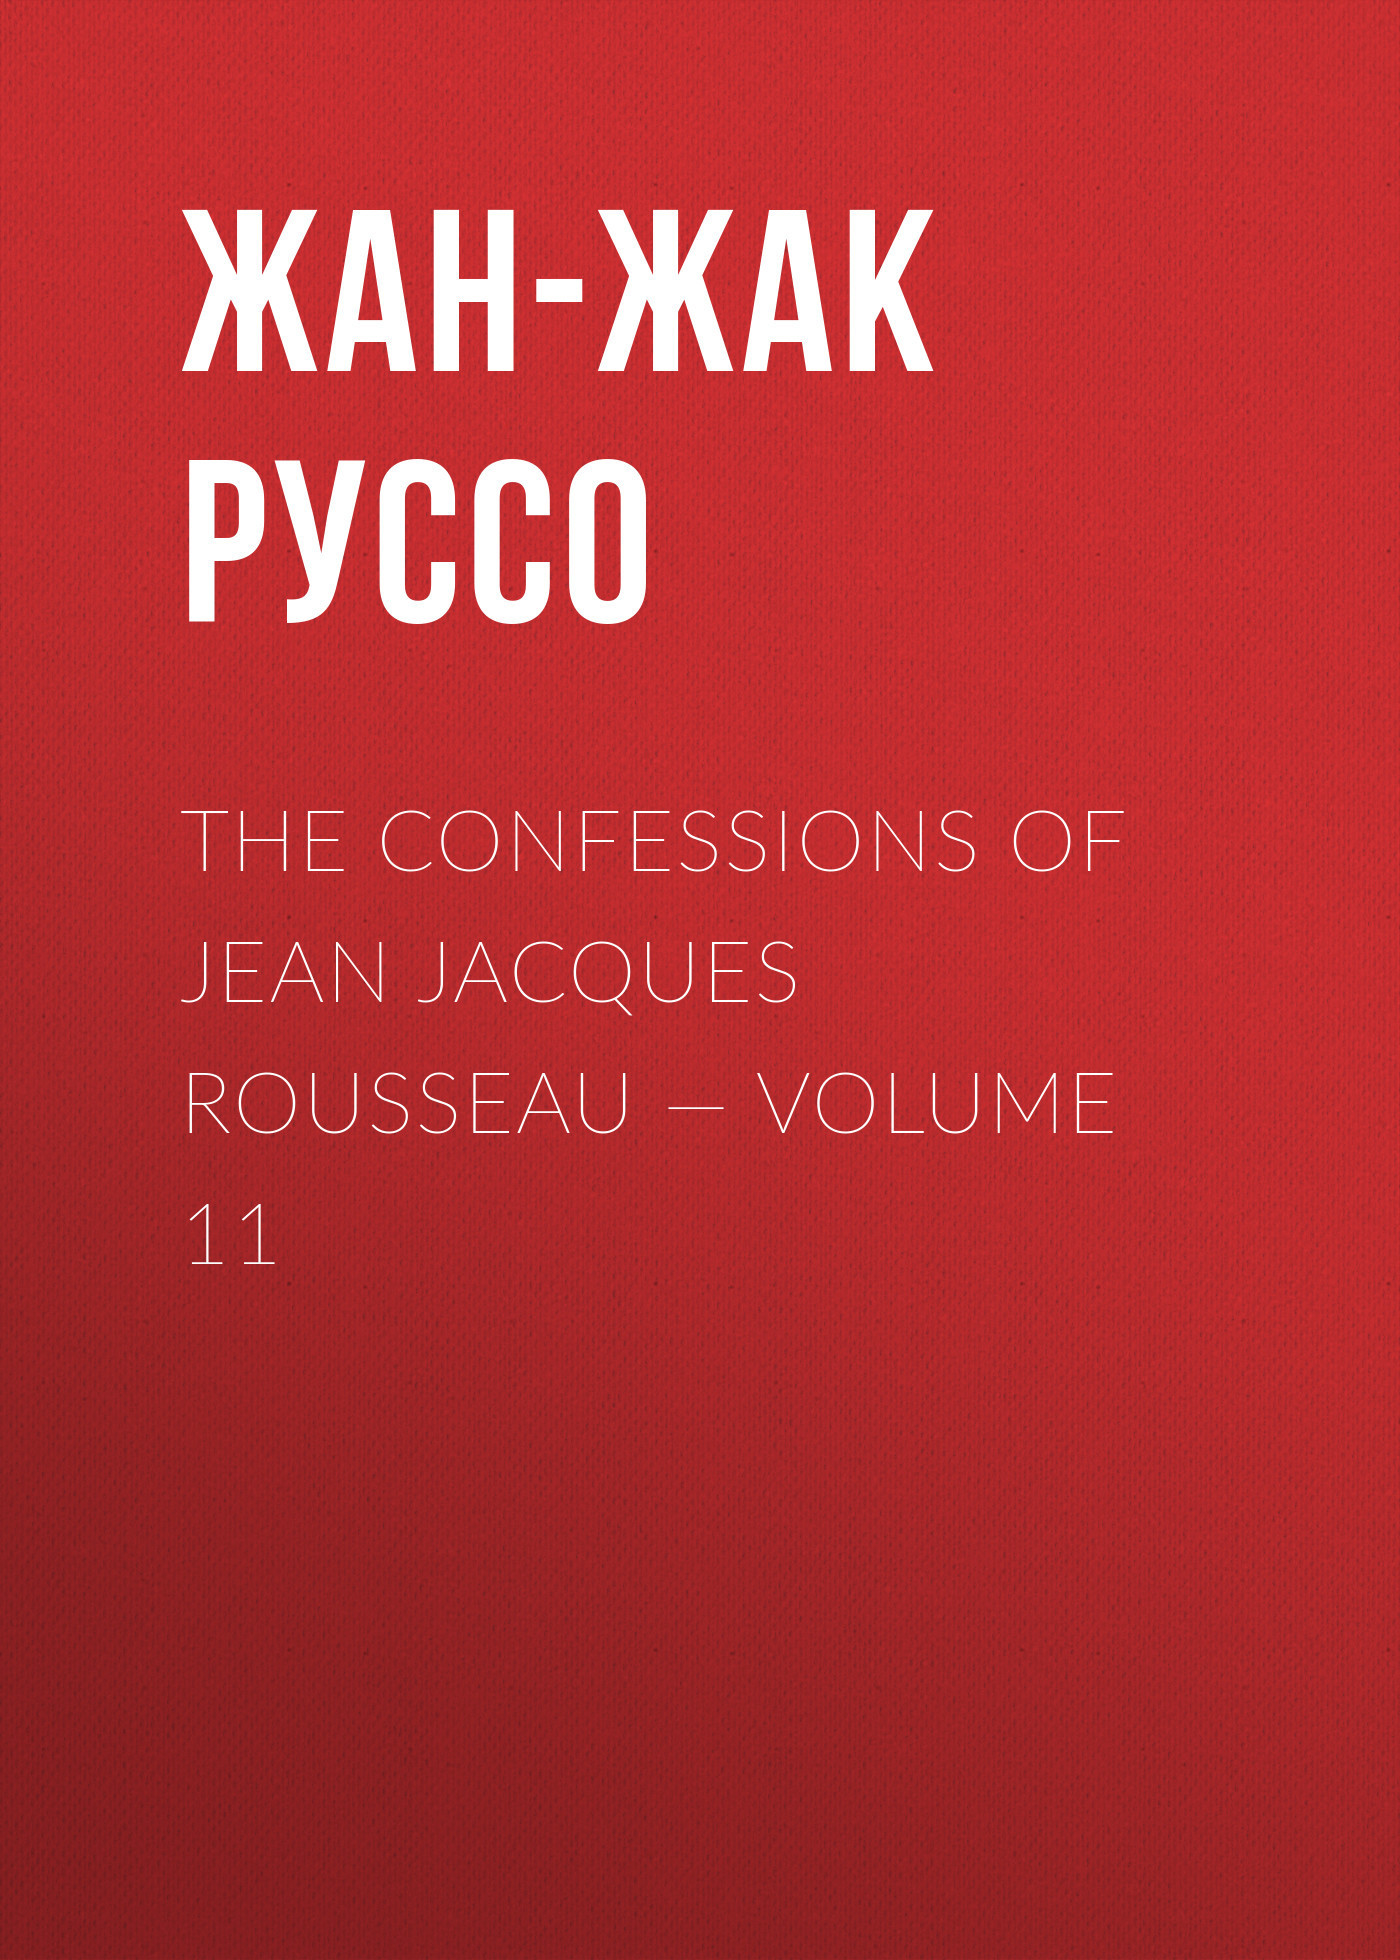 Жан-Жак Руссо The Confessions of Jean Jacques Rousseau — Volume 11 jean jacques rousseau mélanges t 2